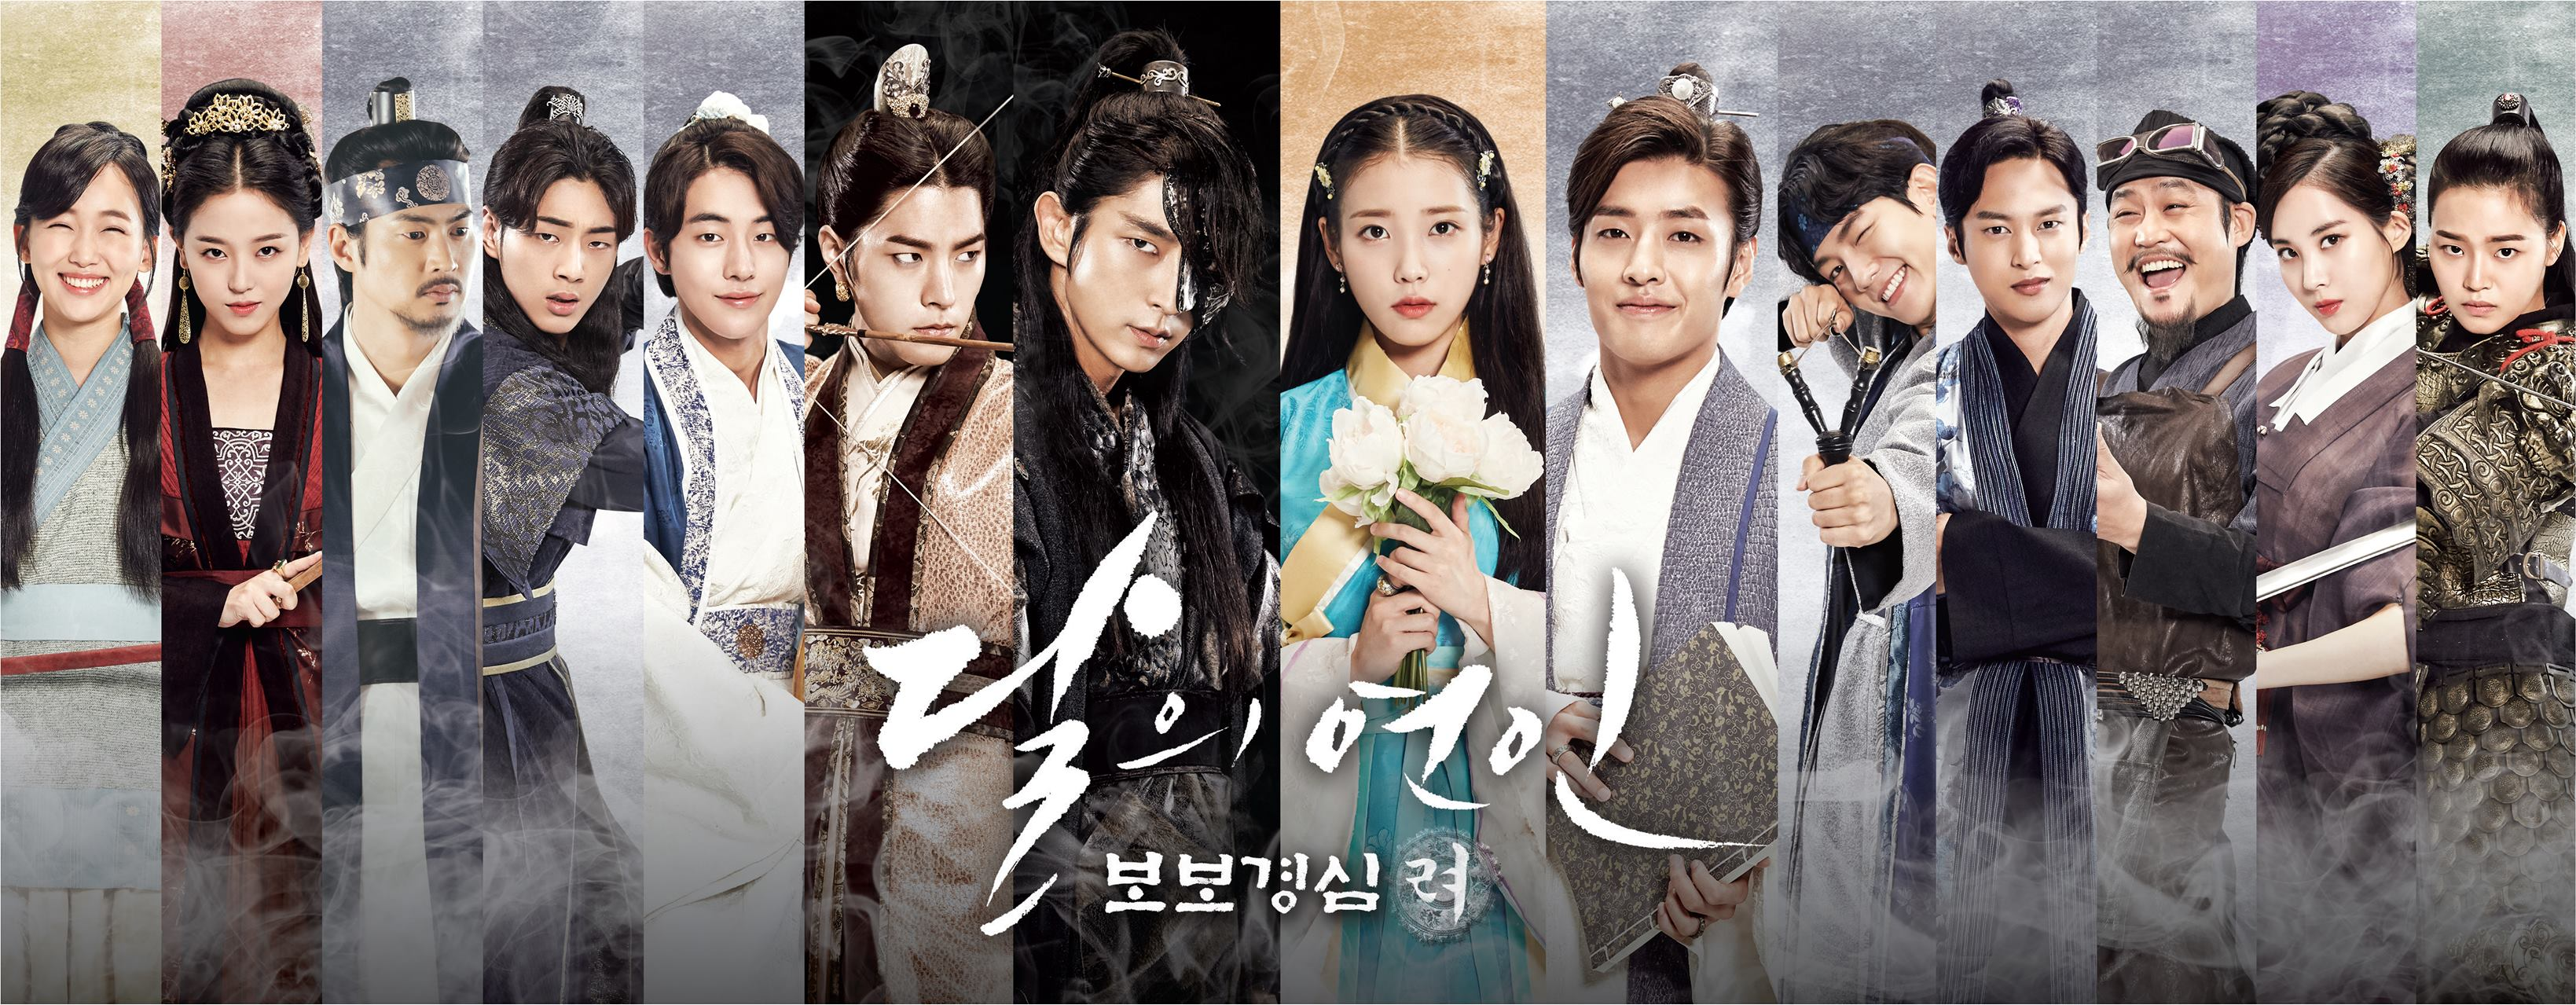 """Ep.1 trailer for SBS drama series """"Moon Lovers: Scarlet Heart Ryeo"""" 